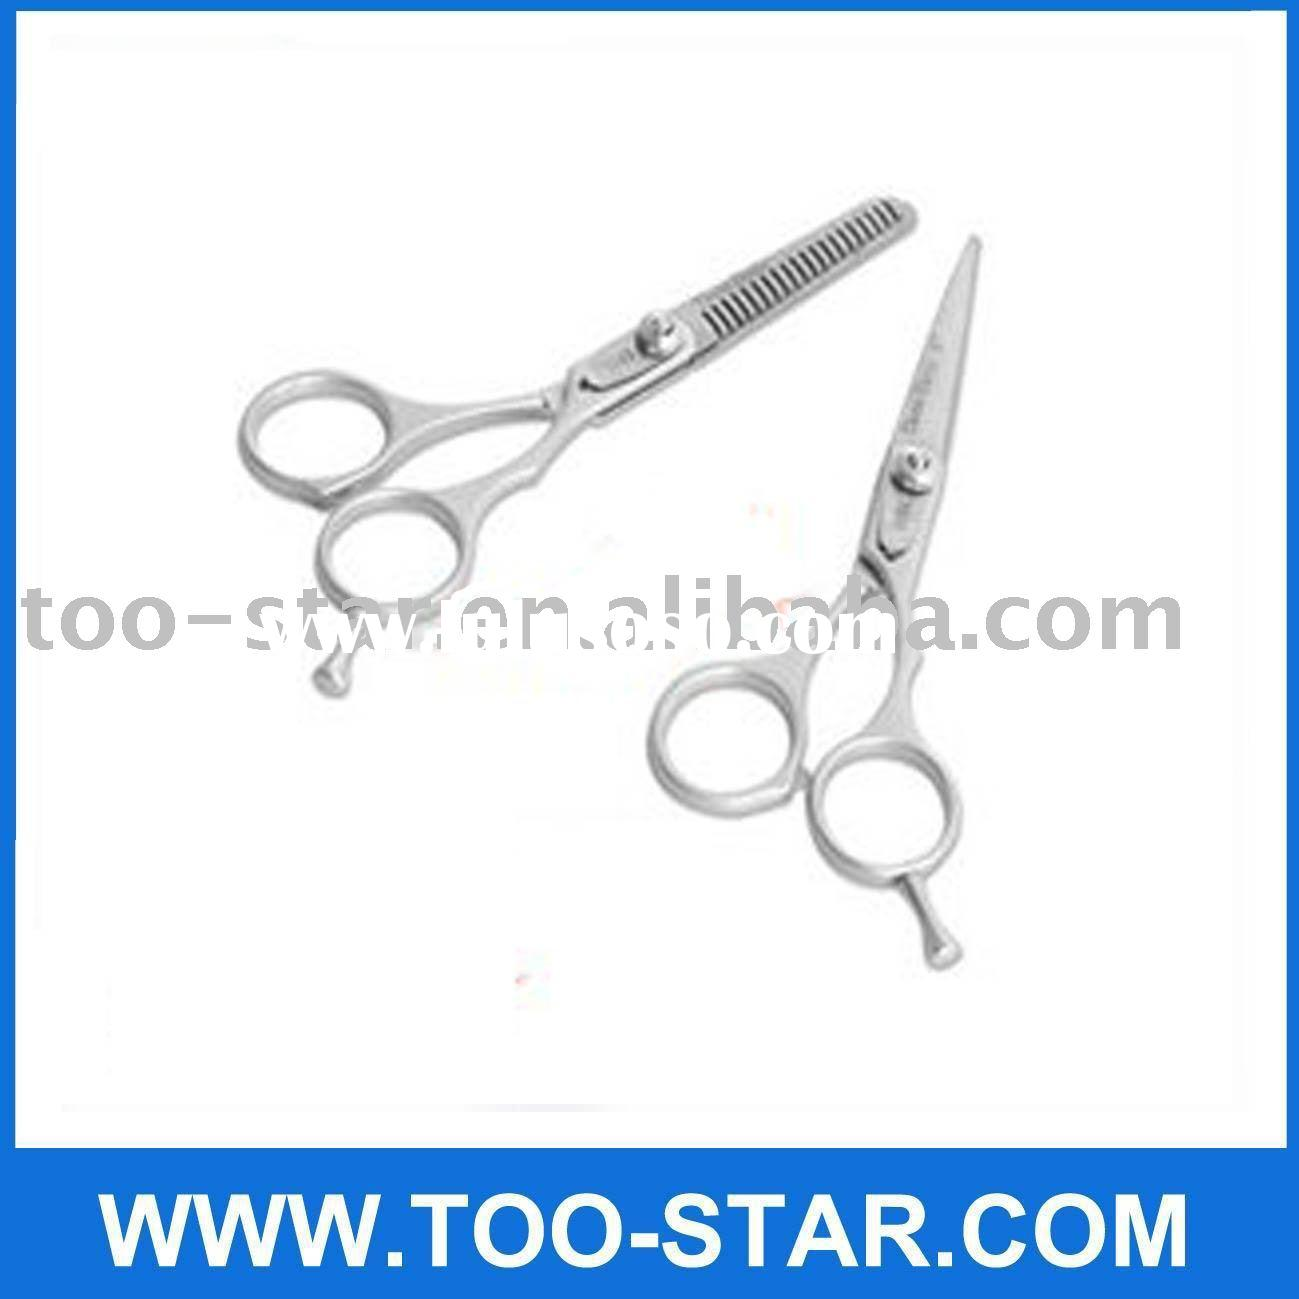 New 2 in 1 Hairdressing Hair Cutting Thinning Scissors Shears Set